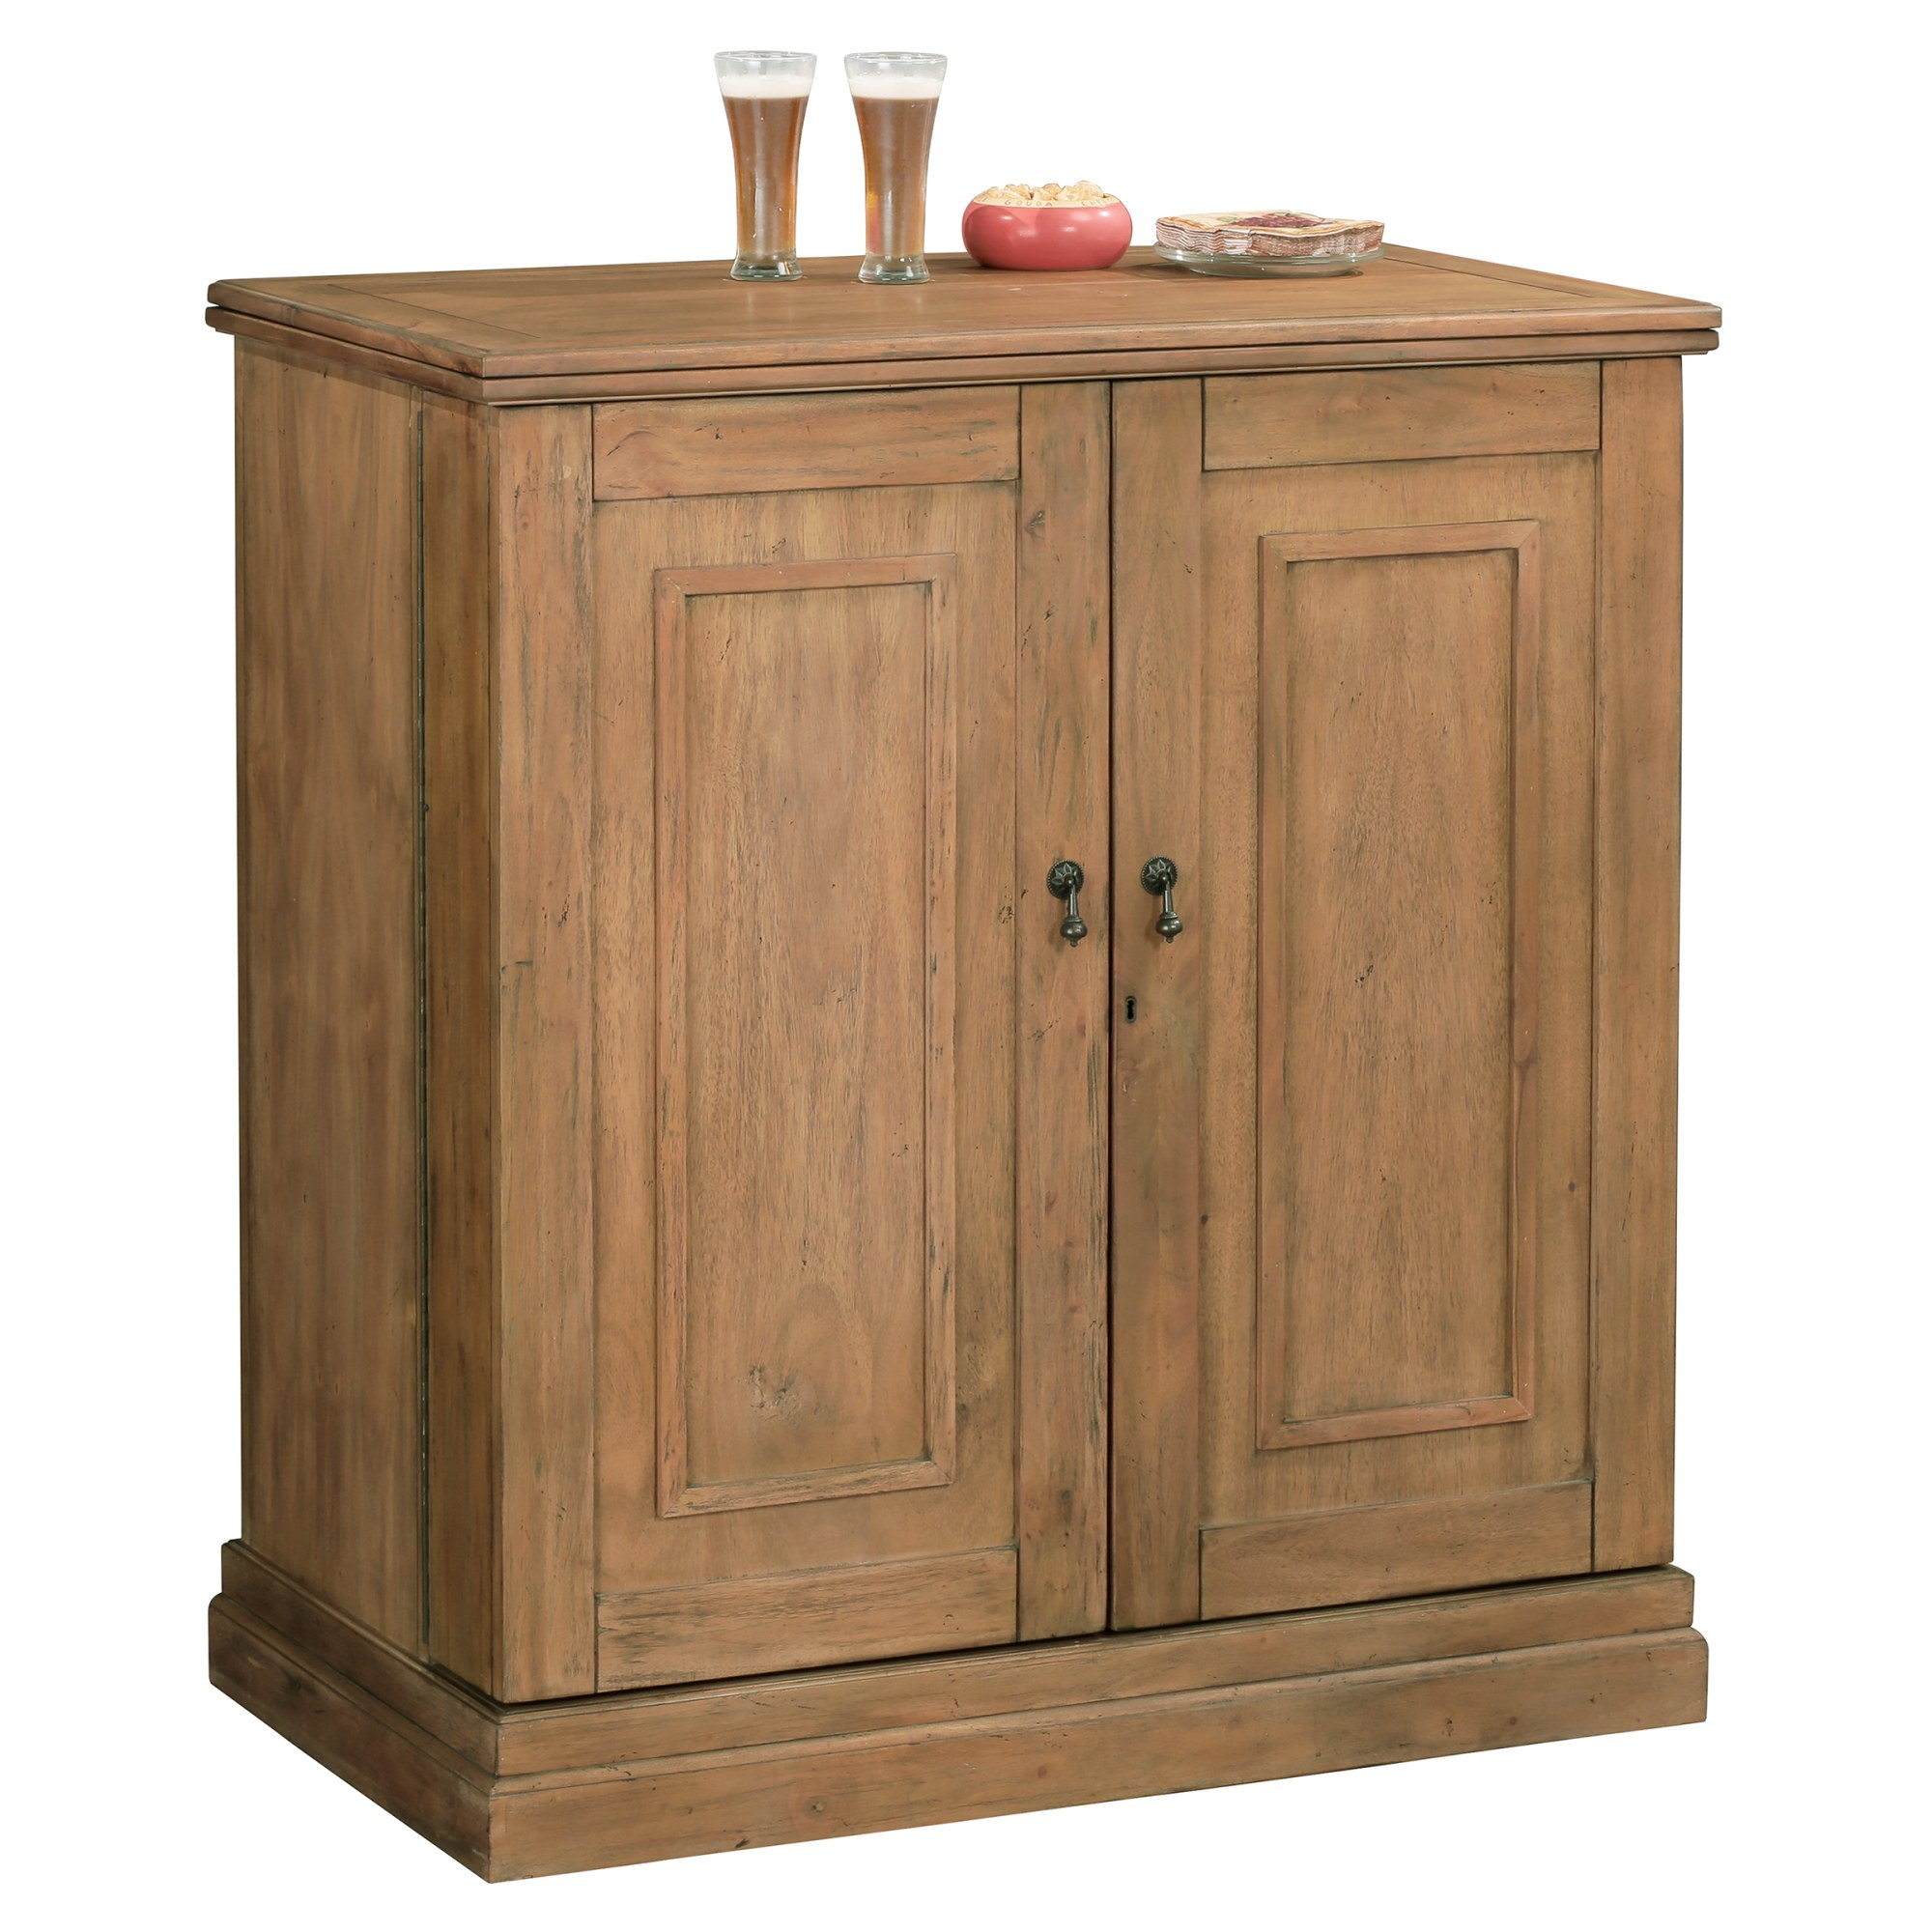 Image for 695-156 Clare Valley Wine & Bar Console from Howard Miller Official Website